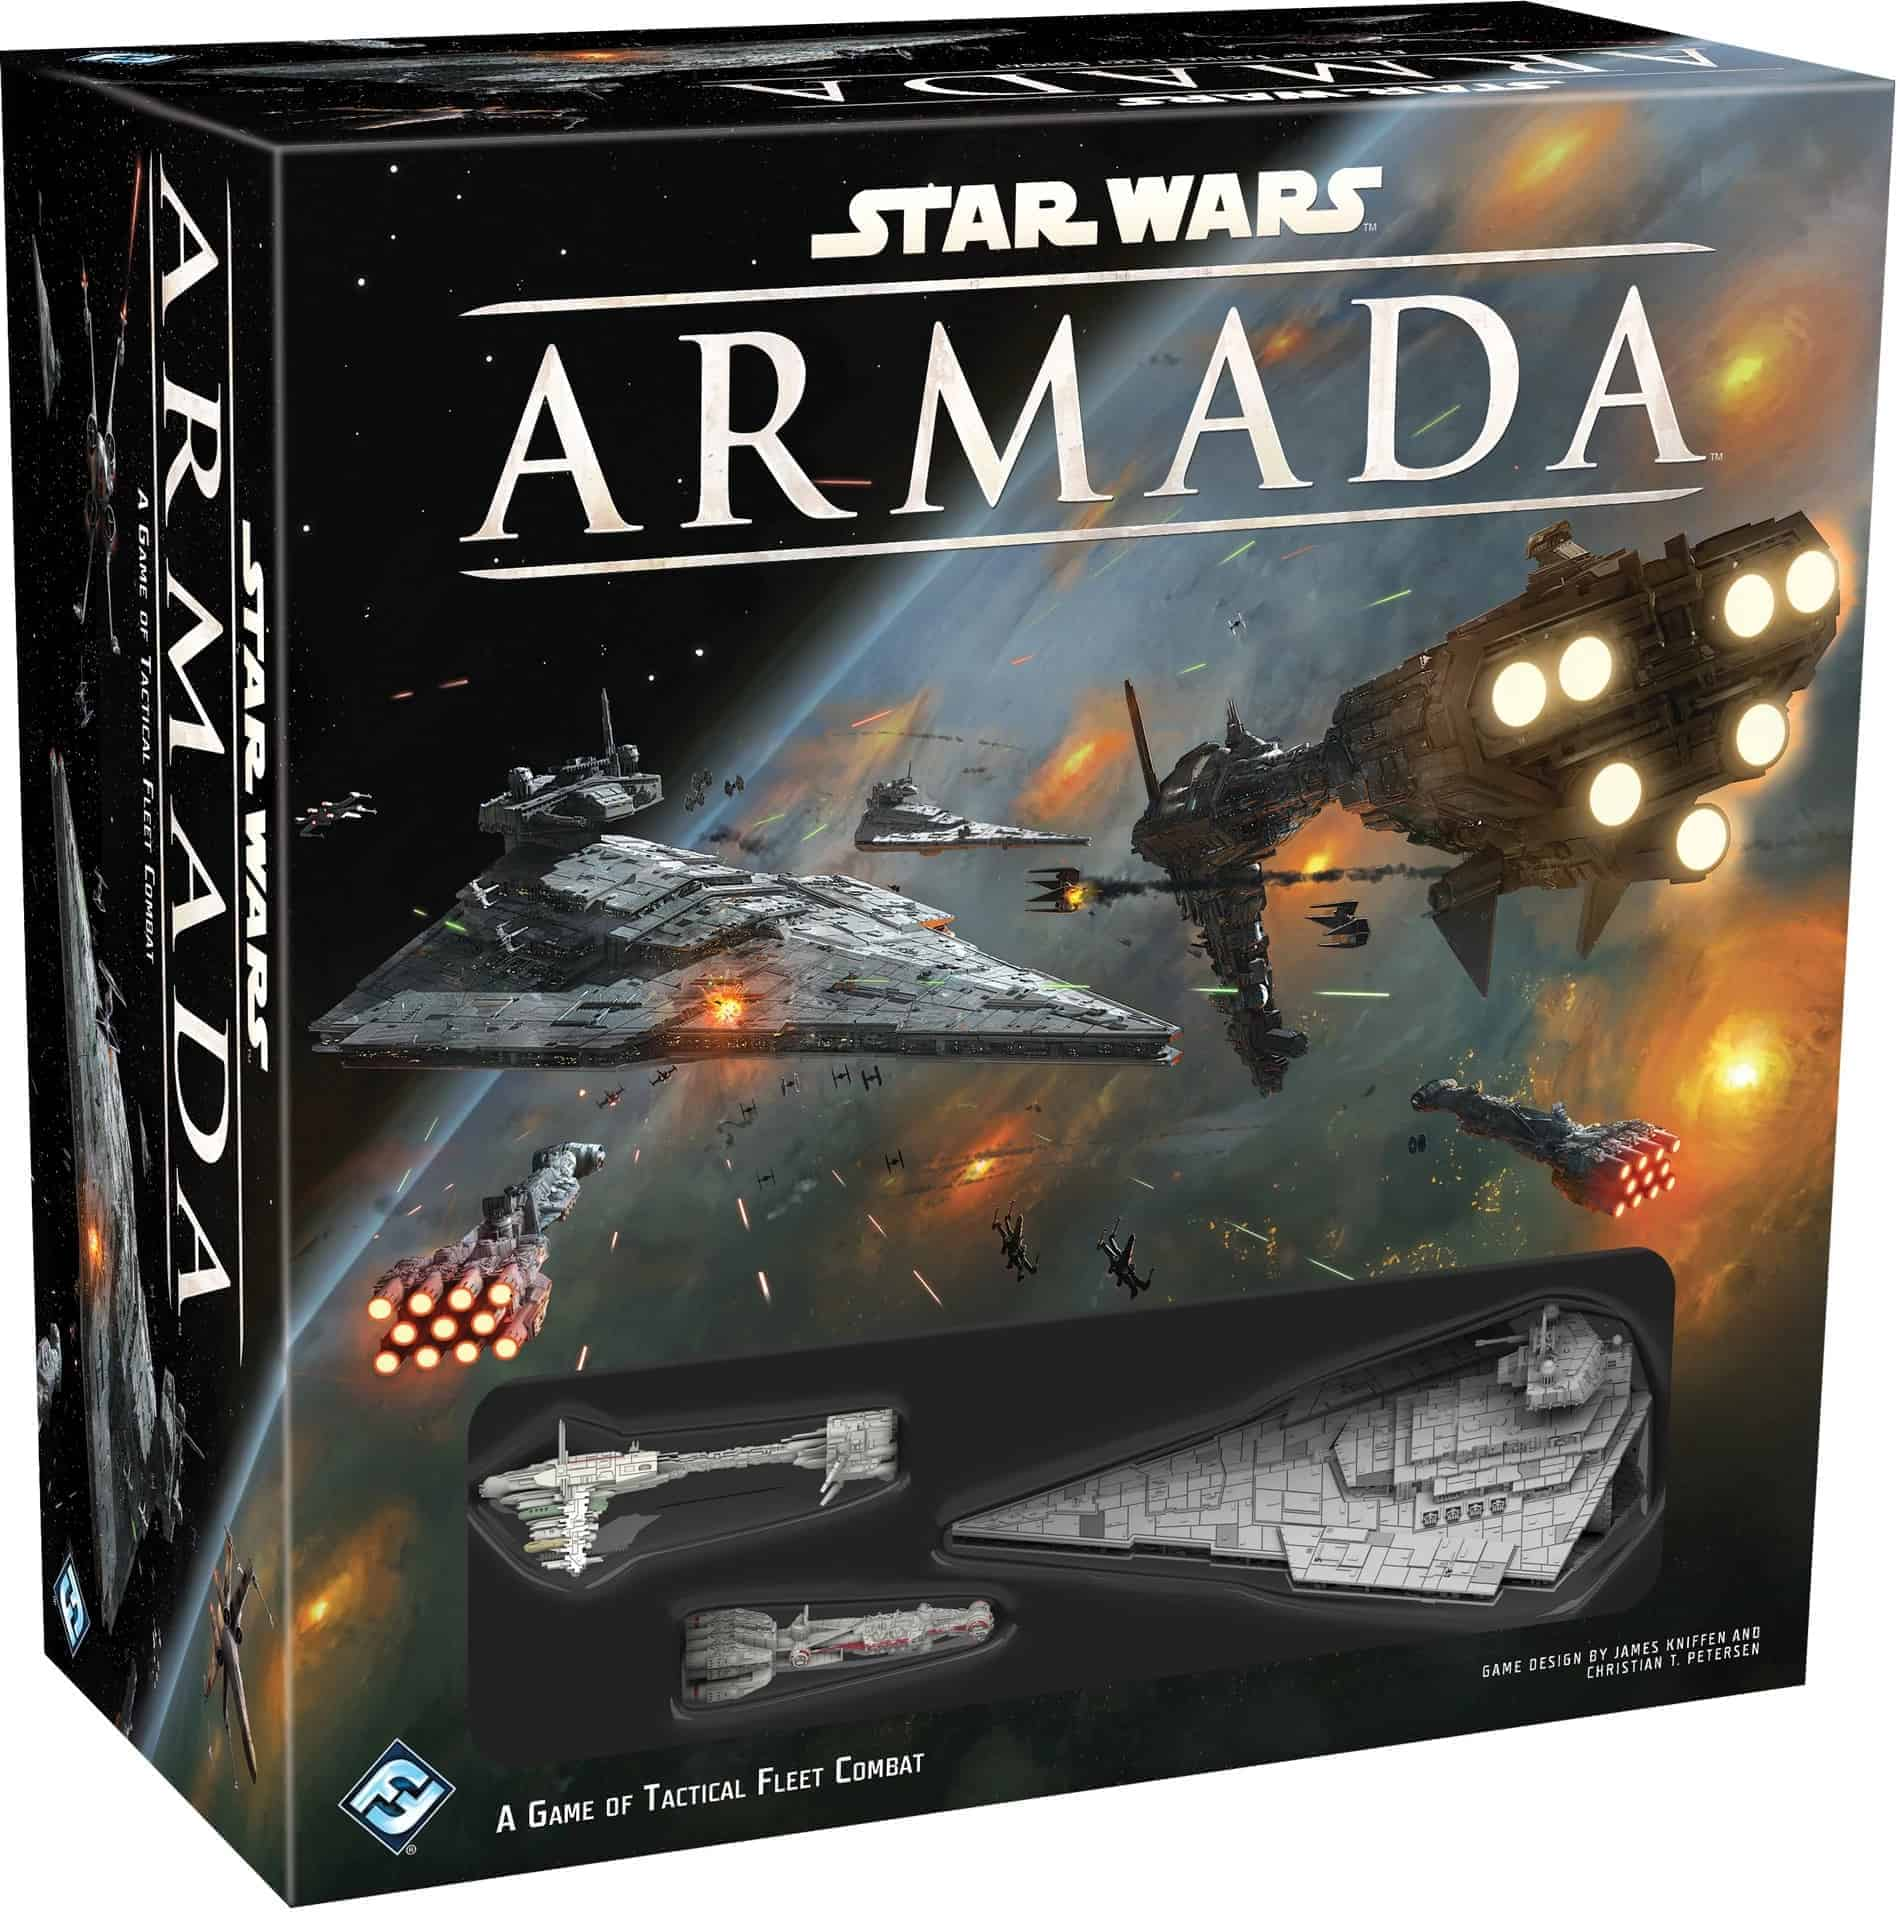 Star Wars Armada is the best Star Wars Board Game for epic scale space battles